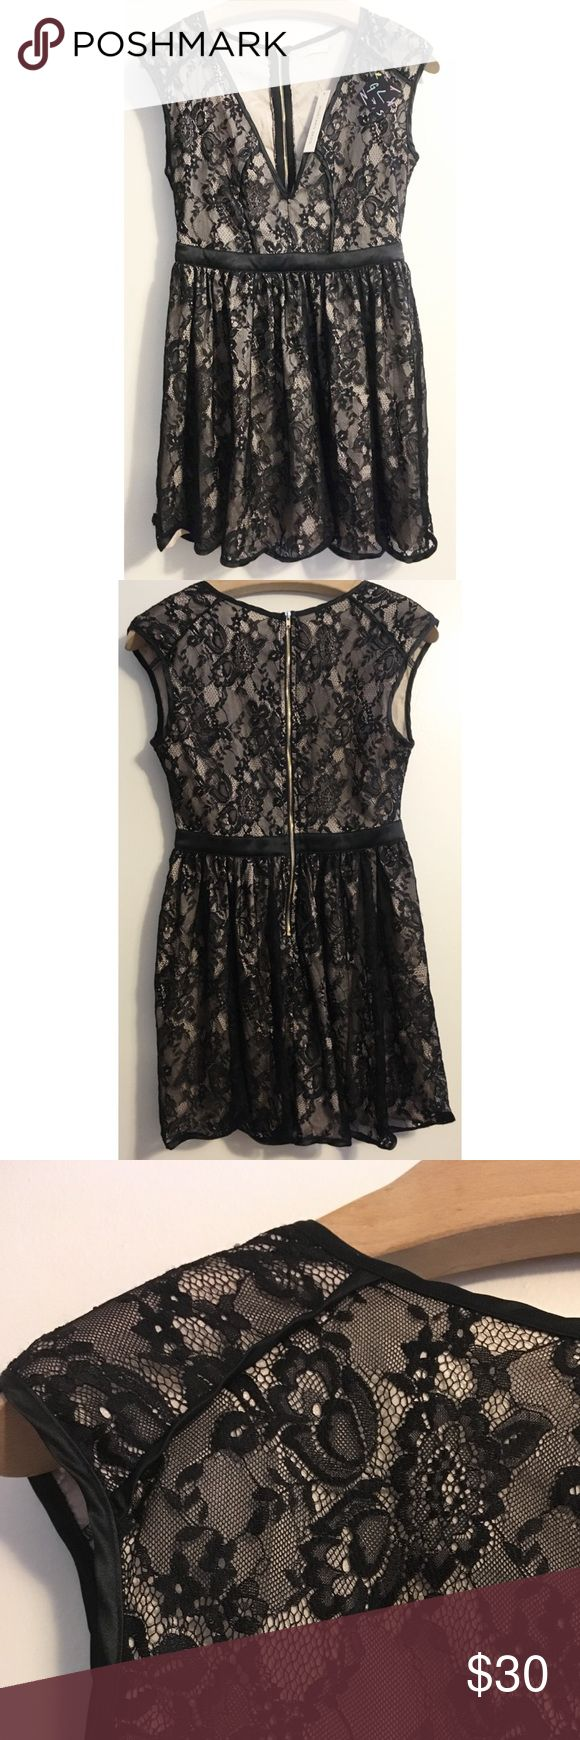 Mustard Seed Nasty Gal black lace deep vneck dress Mustard Seed black floral lace, sleeveless, deep V-neck dress from Nasty Gal. Size medium. Gold zipper. Cream color lining . NWT. ⭐️Host Pick for the Insta Chic Party 7.20.17!⭐️ Mustard Seed Dresses